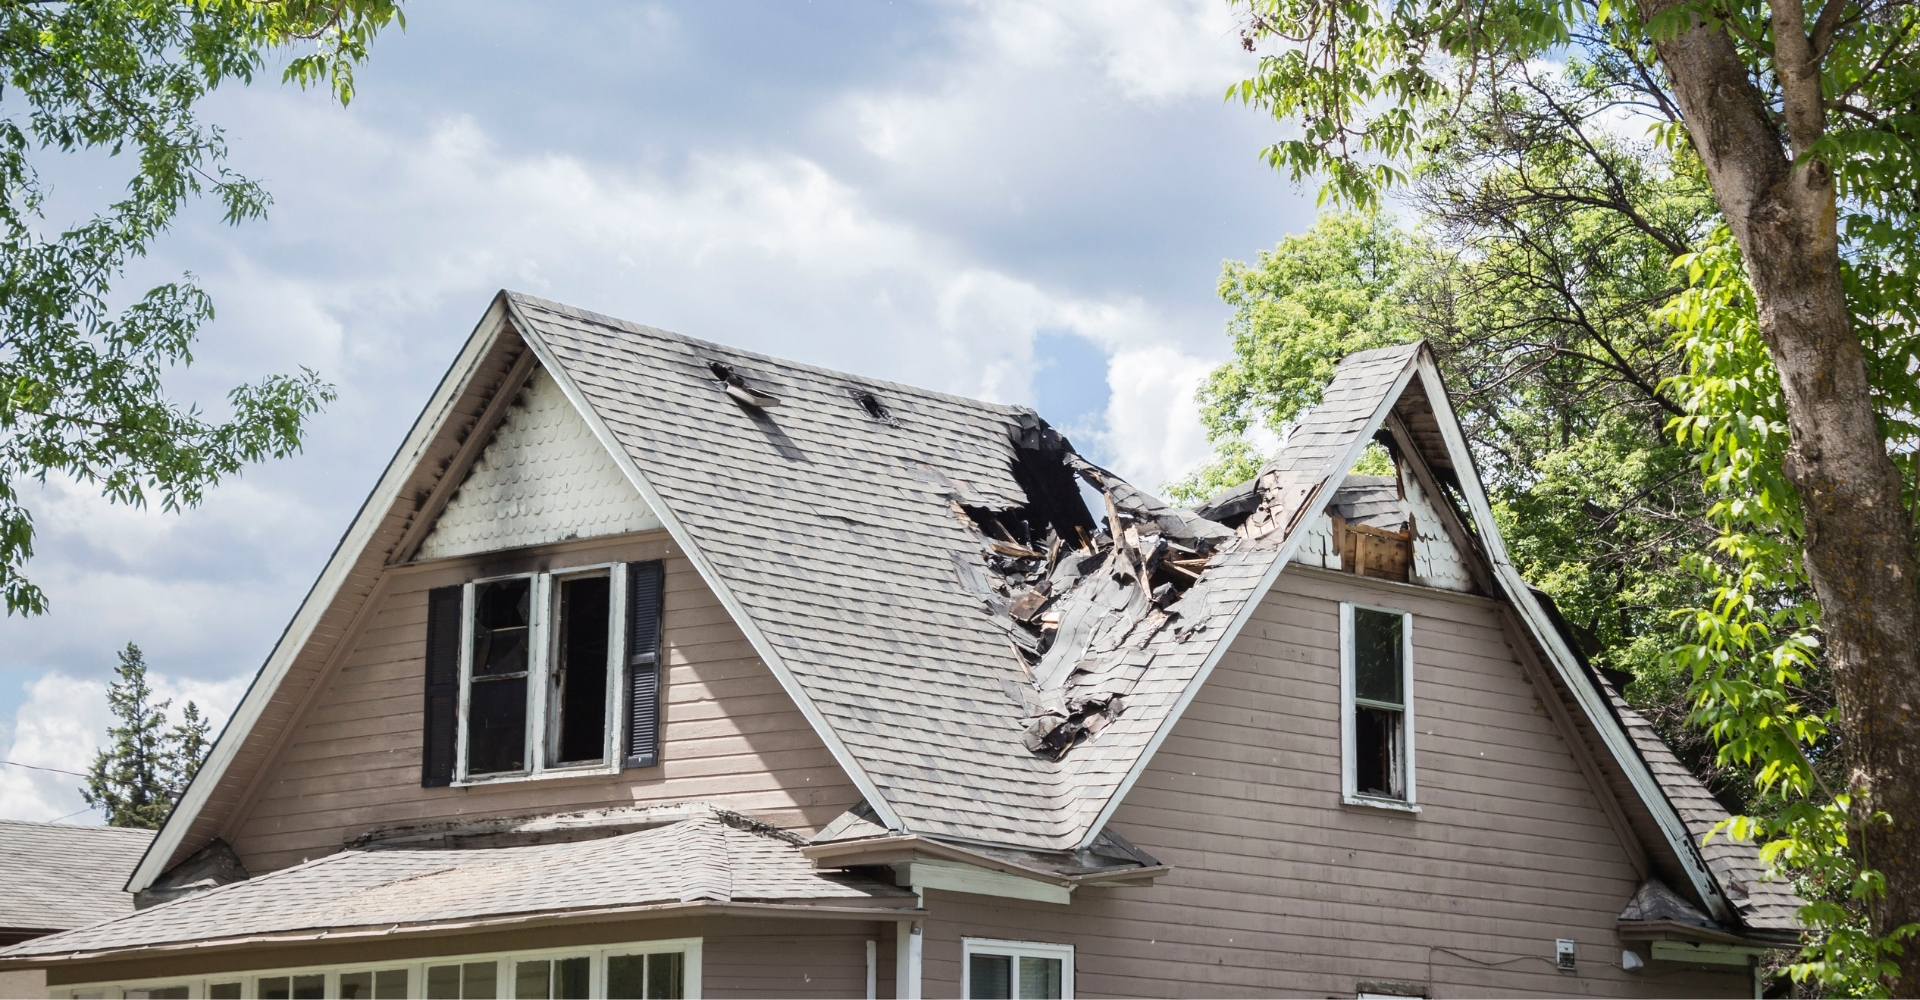 Alconero and Associates - What do insurance companies consider roof damage in Miami